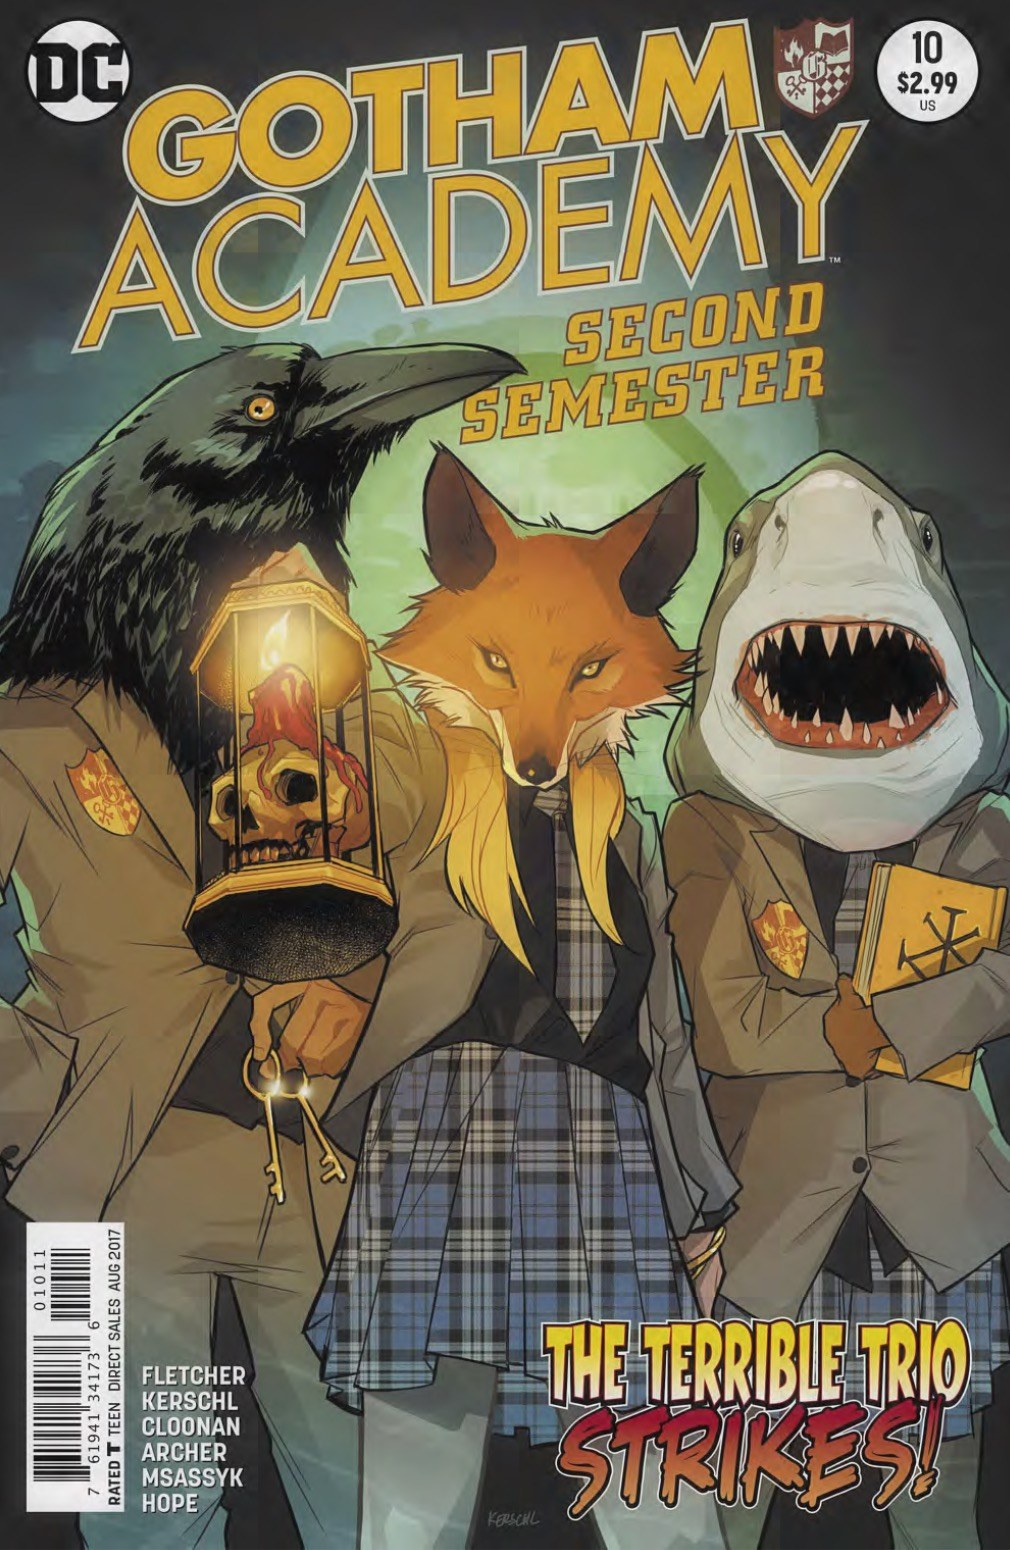 Gotham Academy Second Semester #10 Review